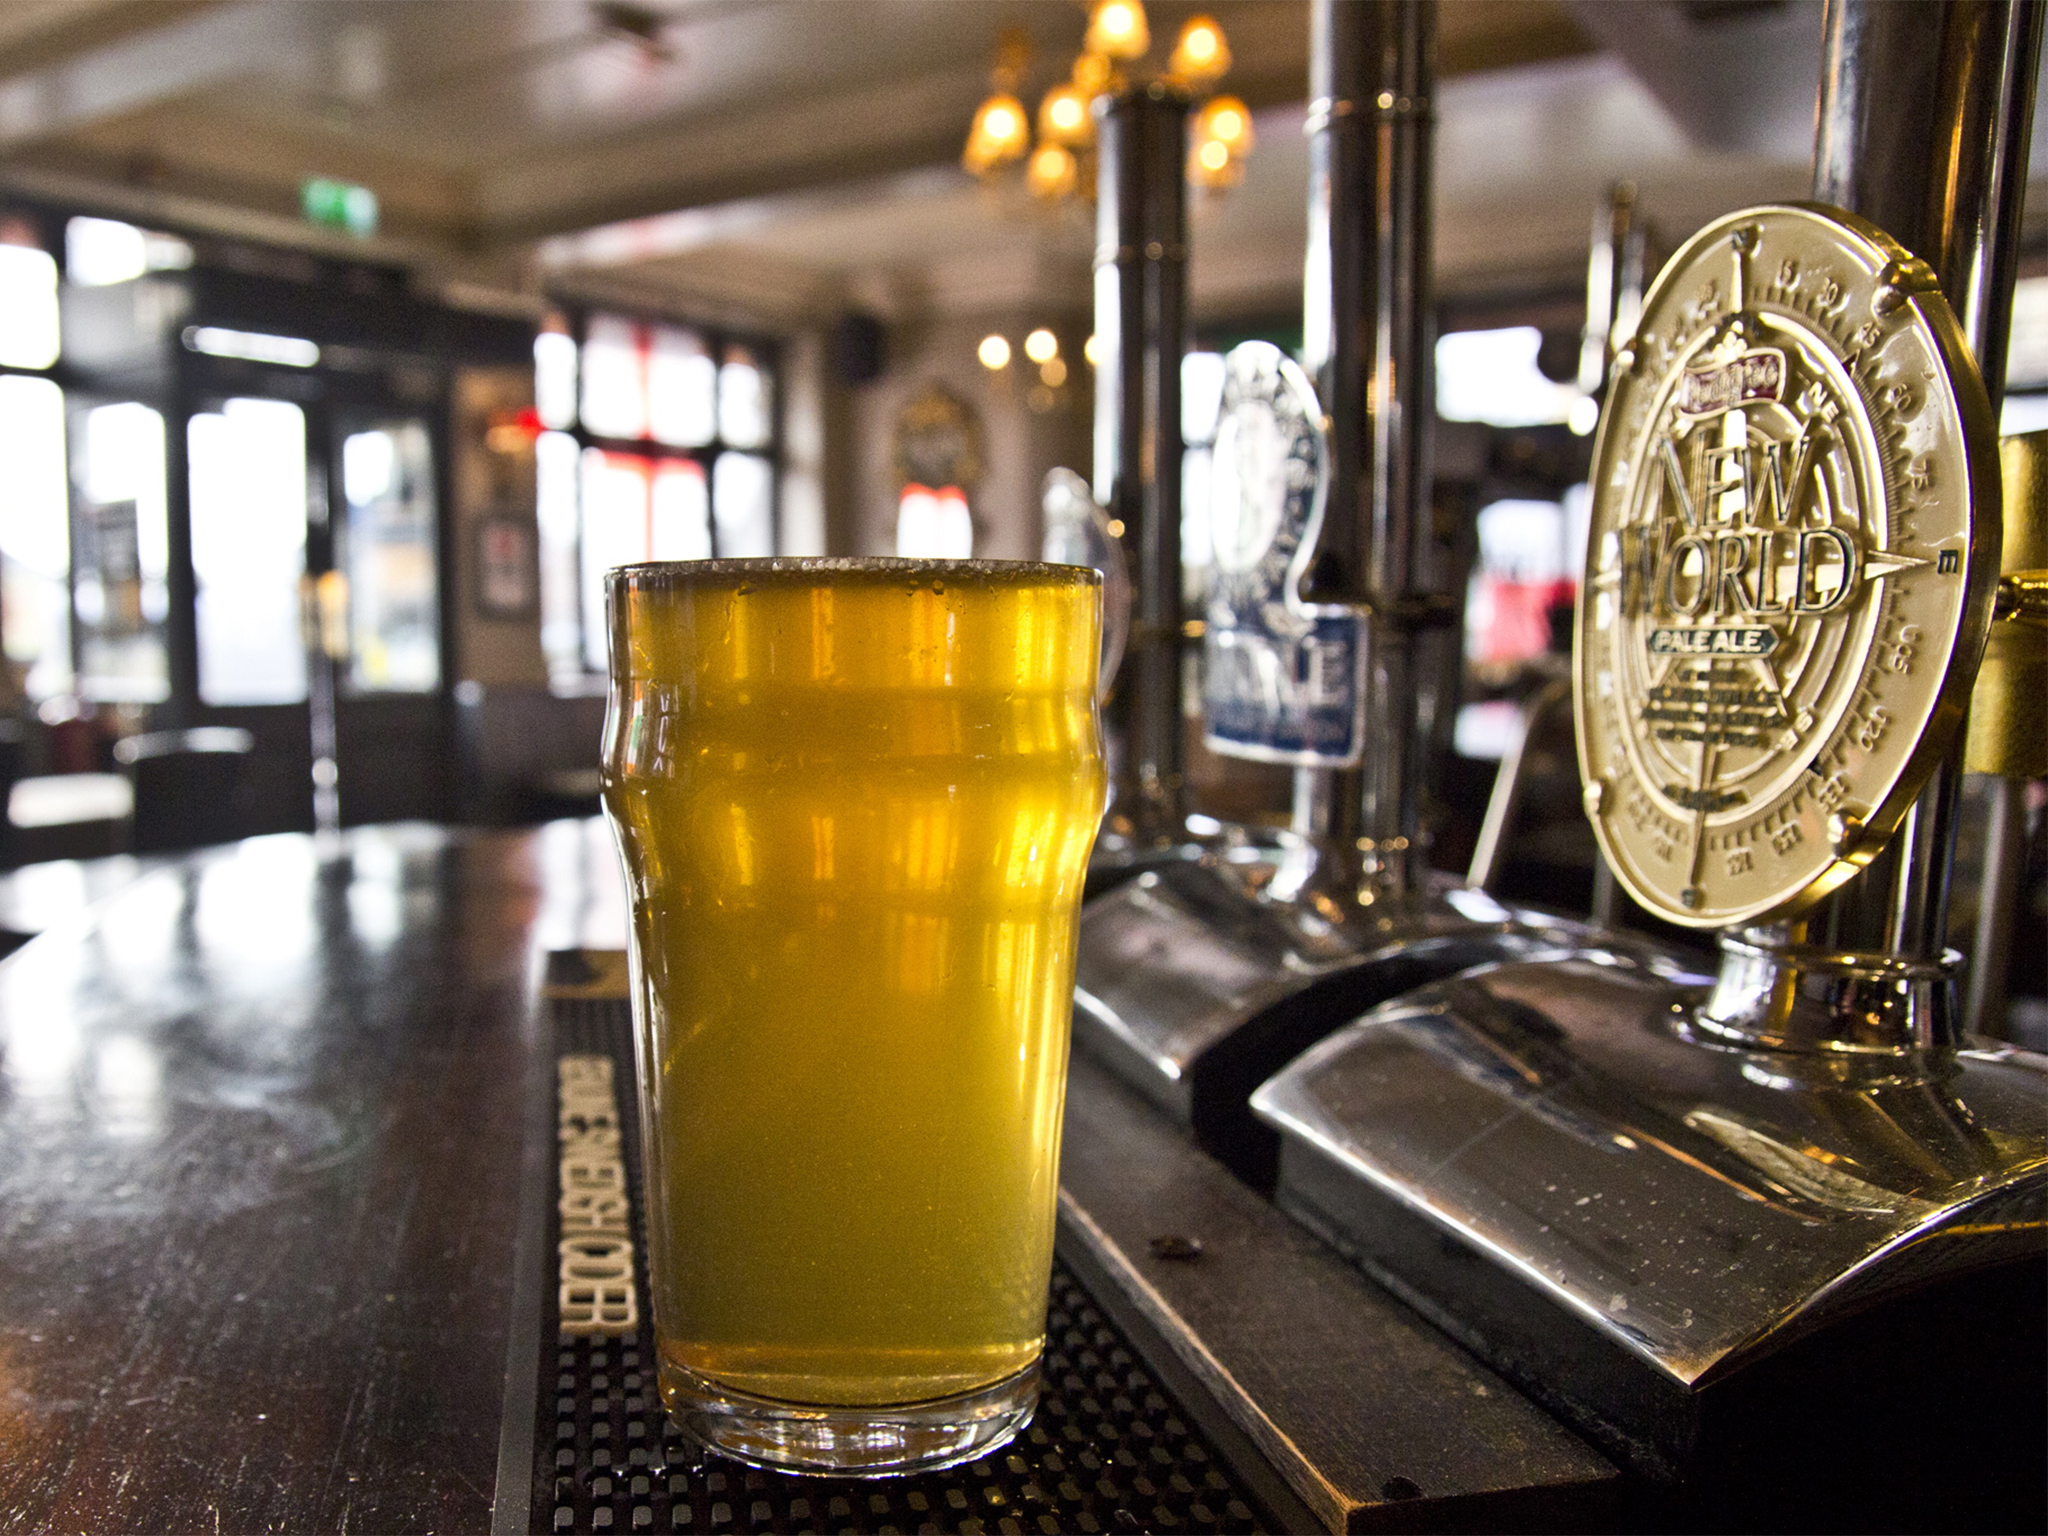 The 100 best bars and pubs in London - The Bedford, Balham